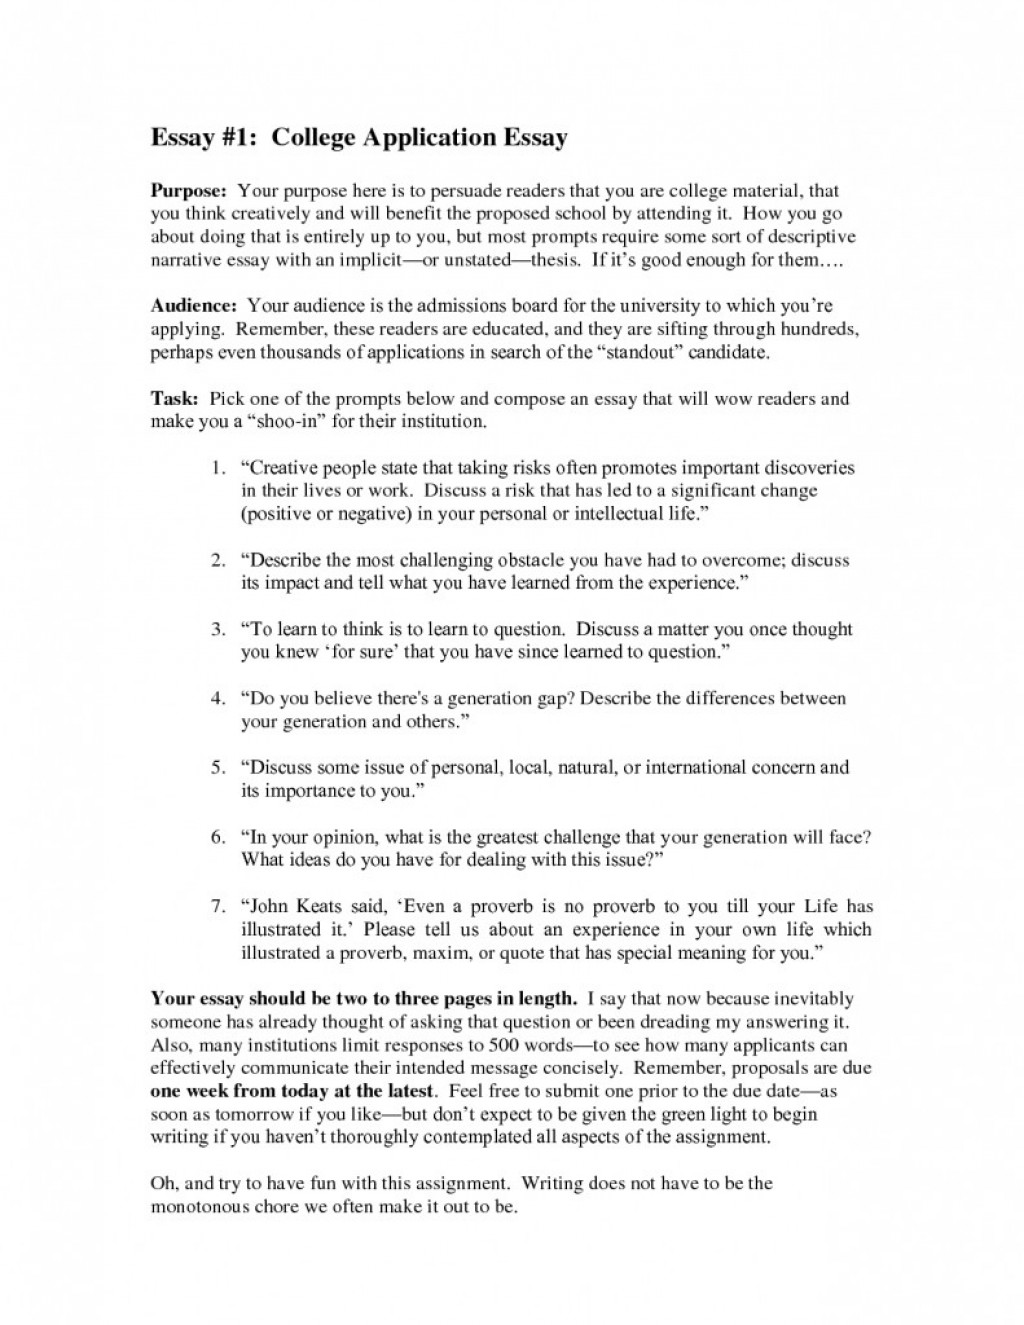 003 College Application Essay 791x1024 Example Personal Challenge Astounding Ideas Large